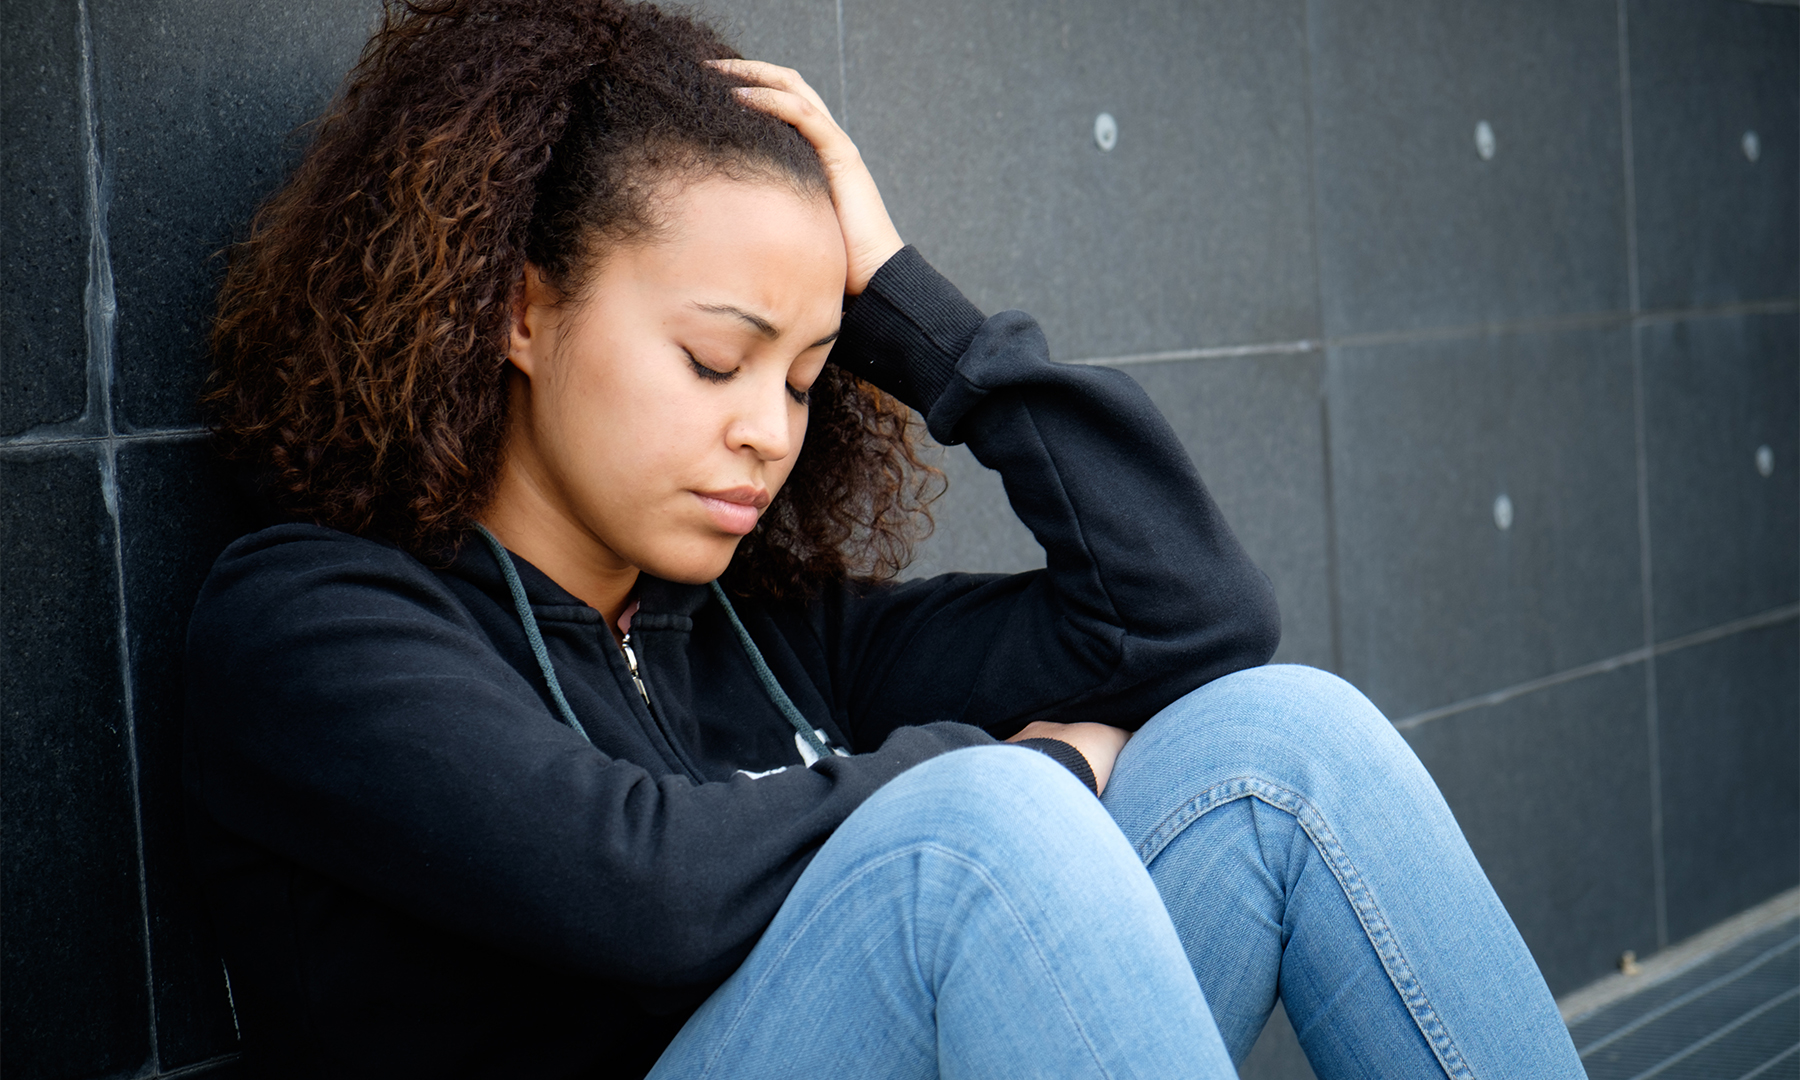 Young person of color in visible distress sitting with their back against a wall, hand on their head.